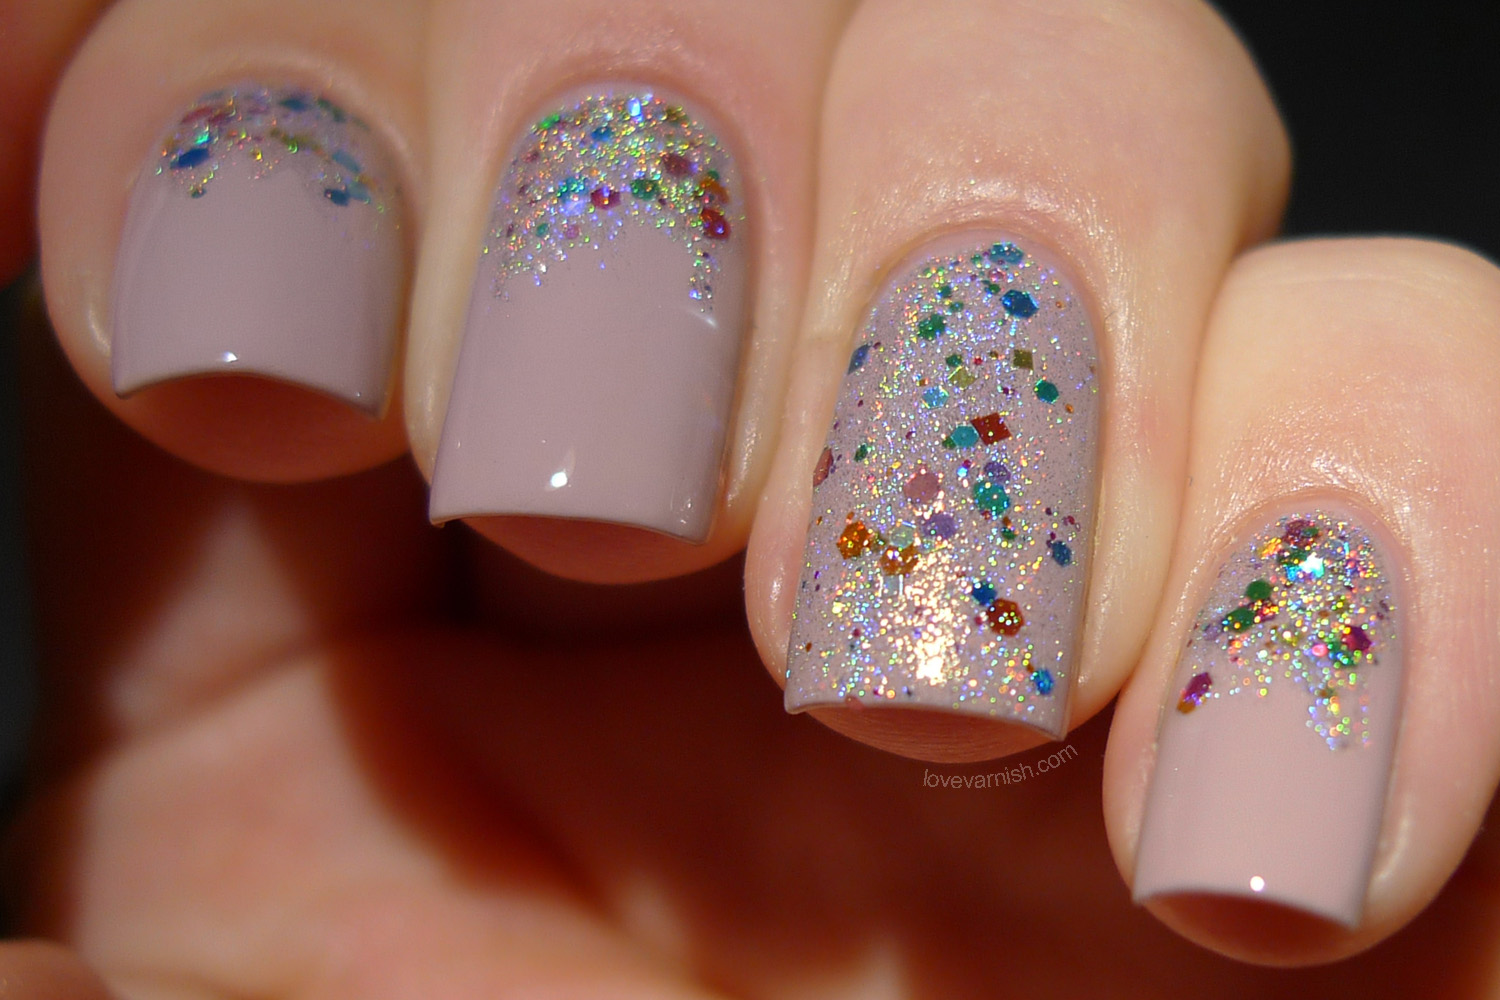 F.U.N Lacquer With SPRINGkles On Top rainbow holographic topper polish